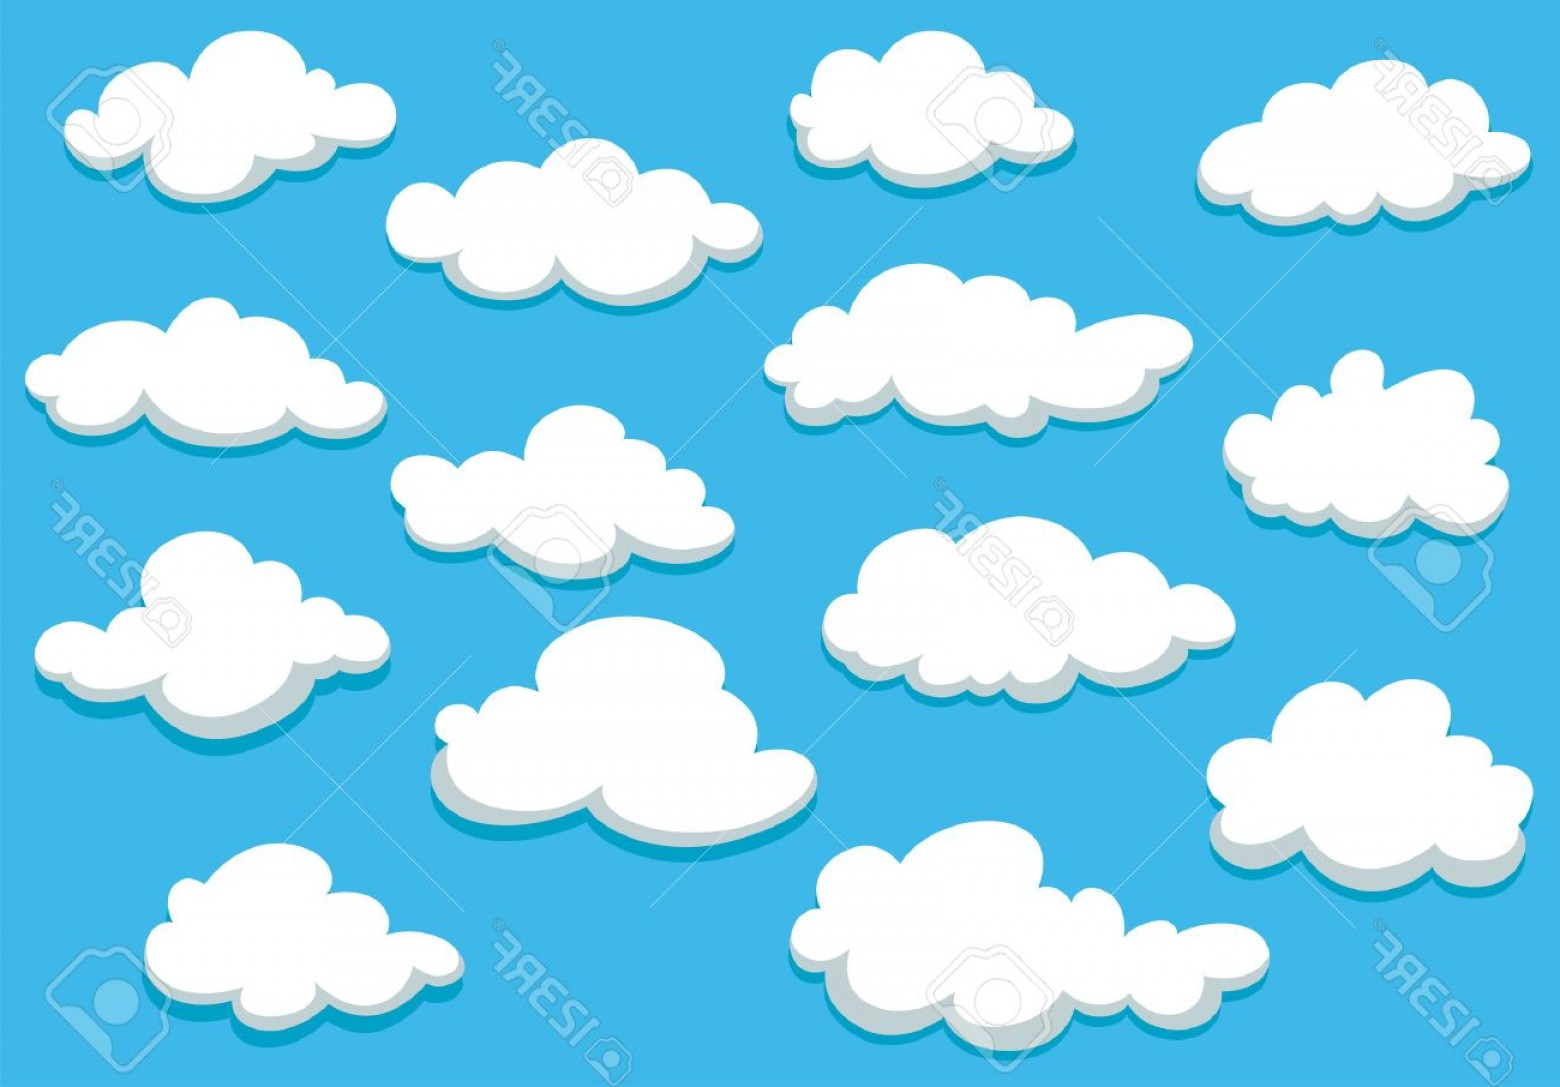 Clouds Backgrounds Vector: Photostock Vector White Fluffy Clouds On Spring Blue Sky In Cartoon Style For Background Or Wallpaper Design